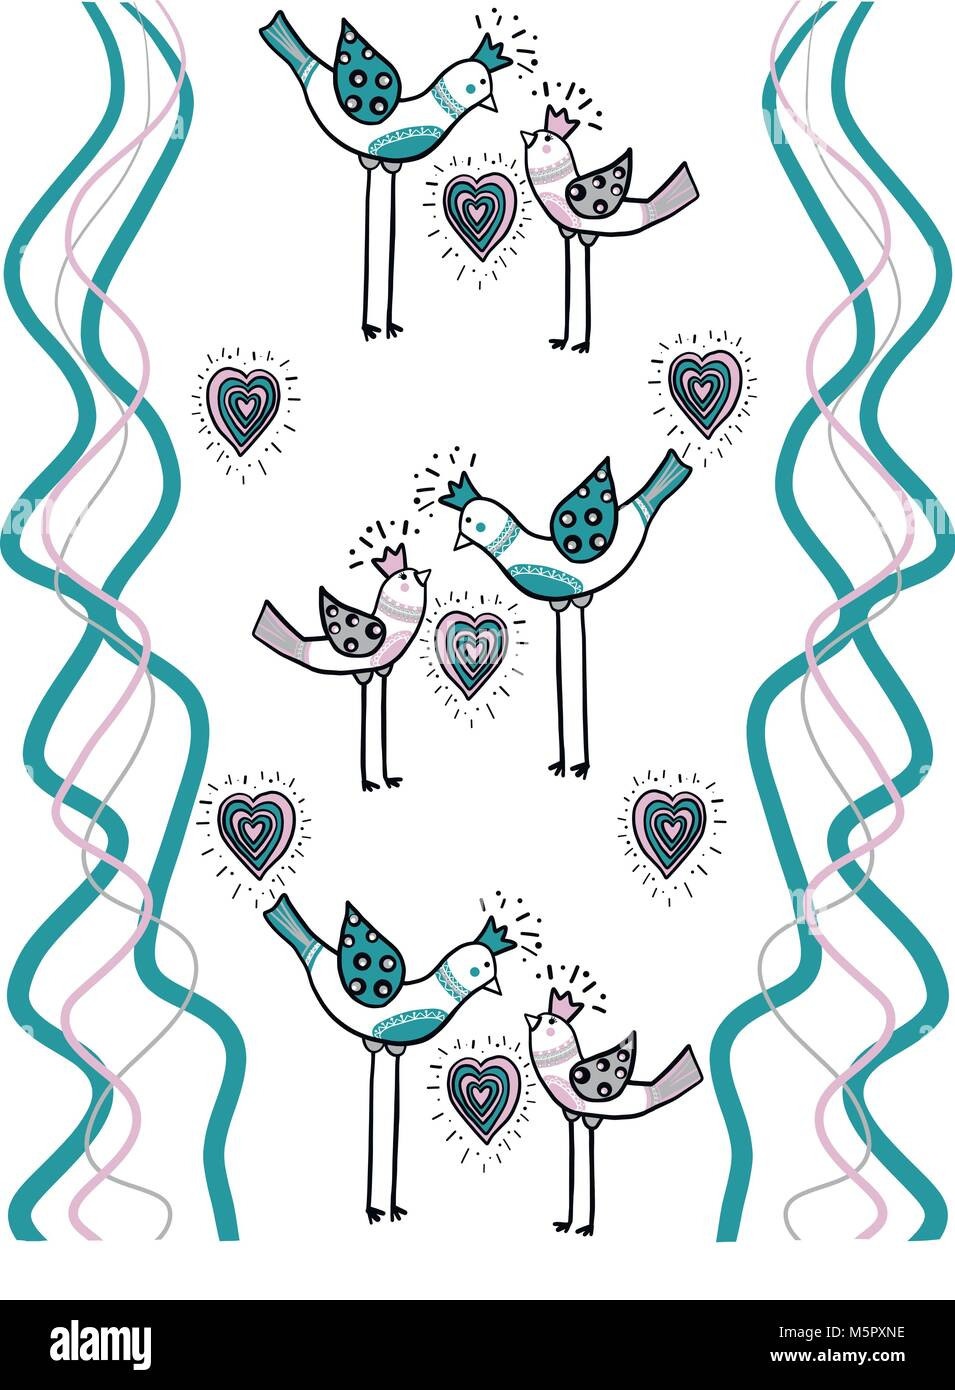 couple love birds with color heart and wave color lines are part of a beautiful ornament that creates design paper - Stock Image